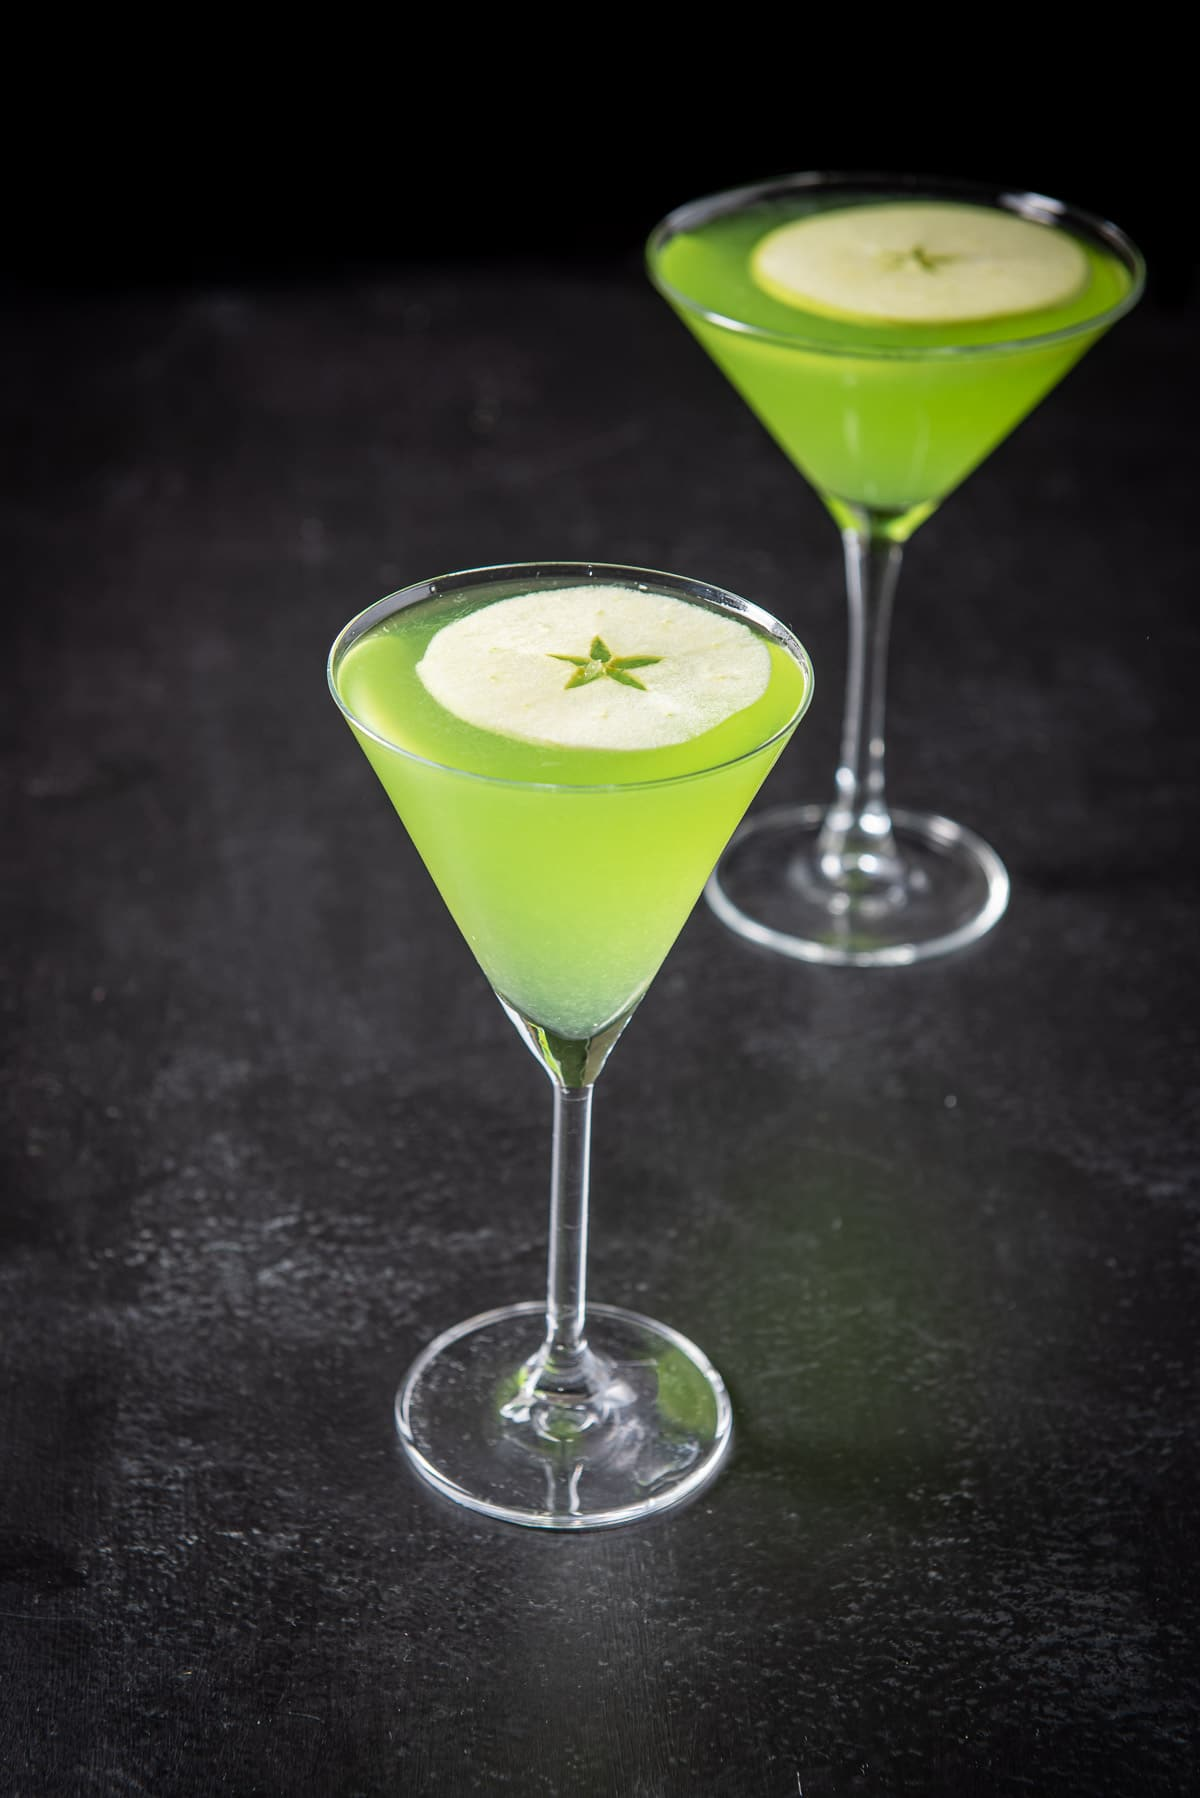 Thin martini glass filled with the sour appletini cocktail